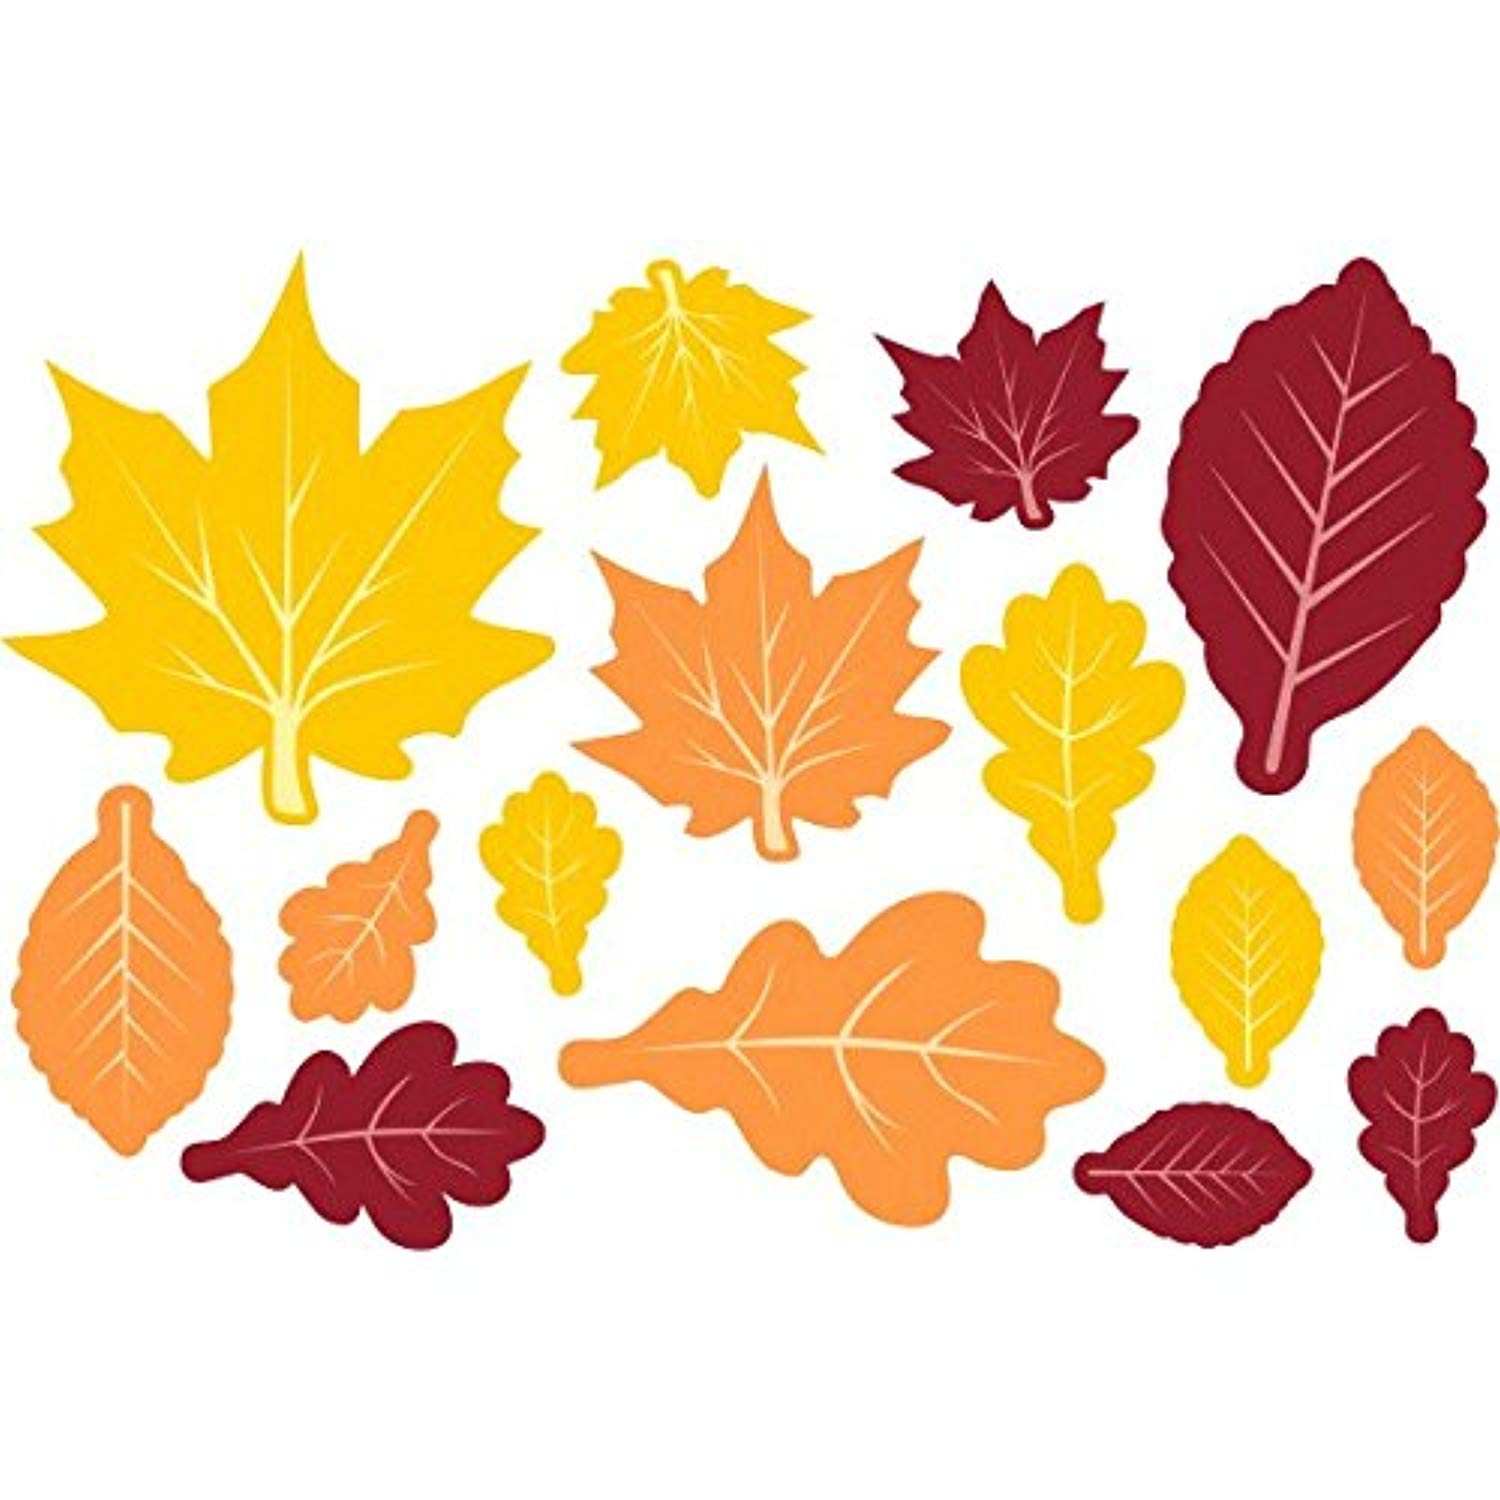 120 Paper Die Cut Maple Leaves of assorted bright colors